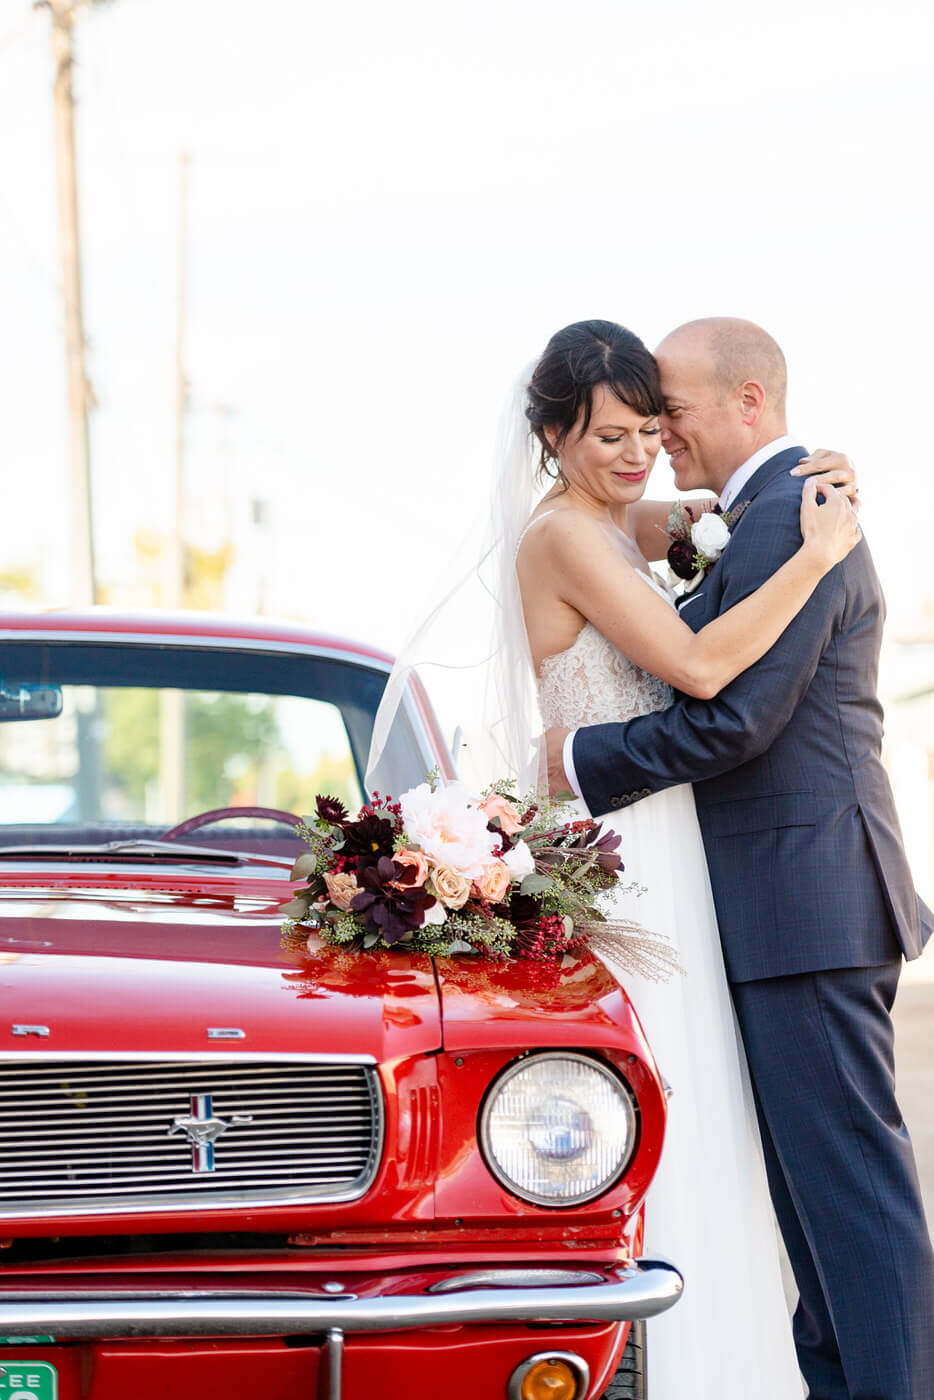 Scott & Keely - Bride & Groom leaning on Vintage Mustang